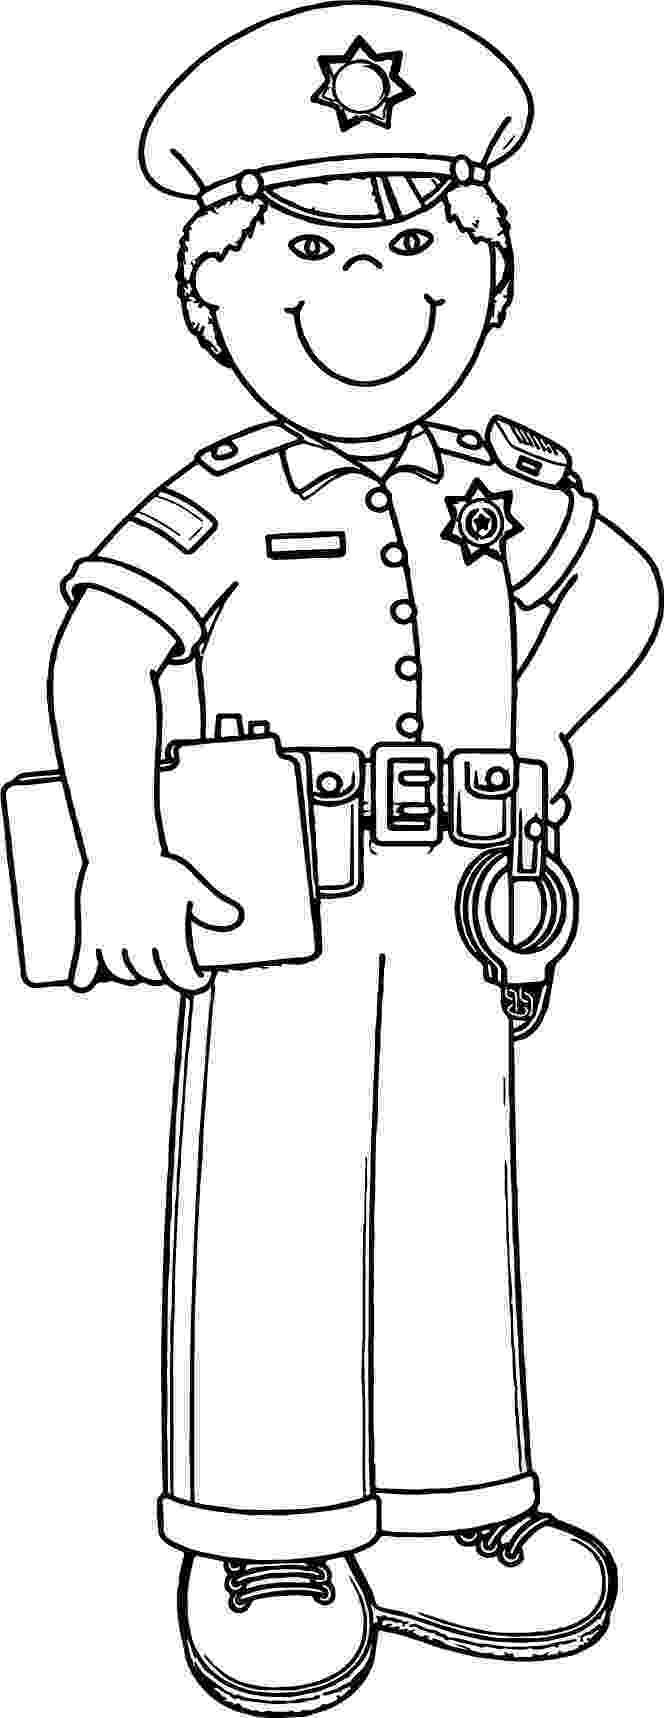 police pictures to color policeman coloring pages wecoloringpagecom pictures to color police